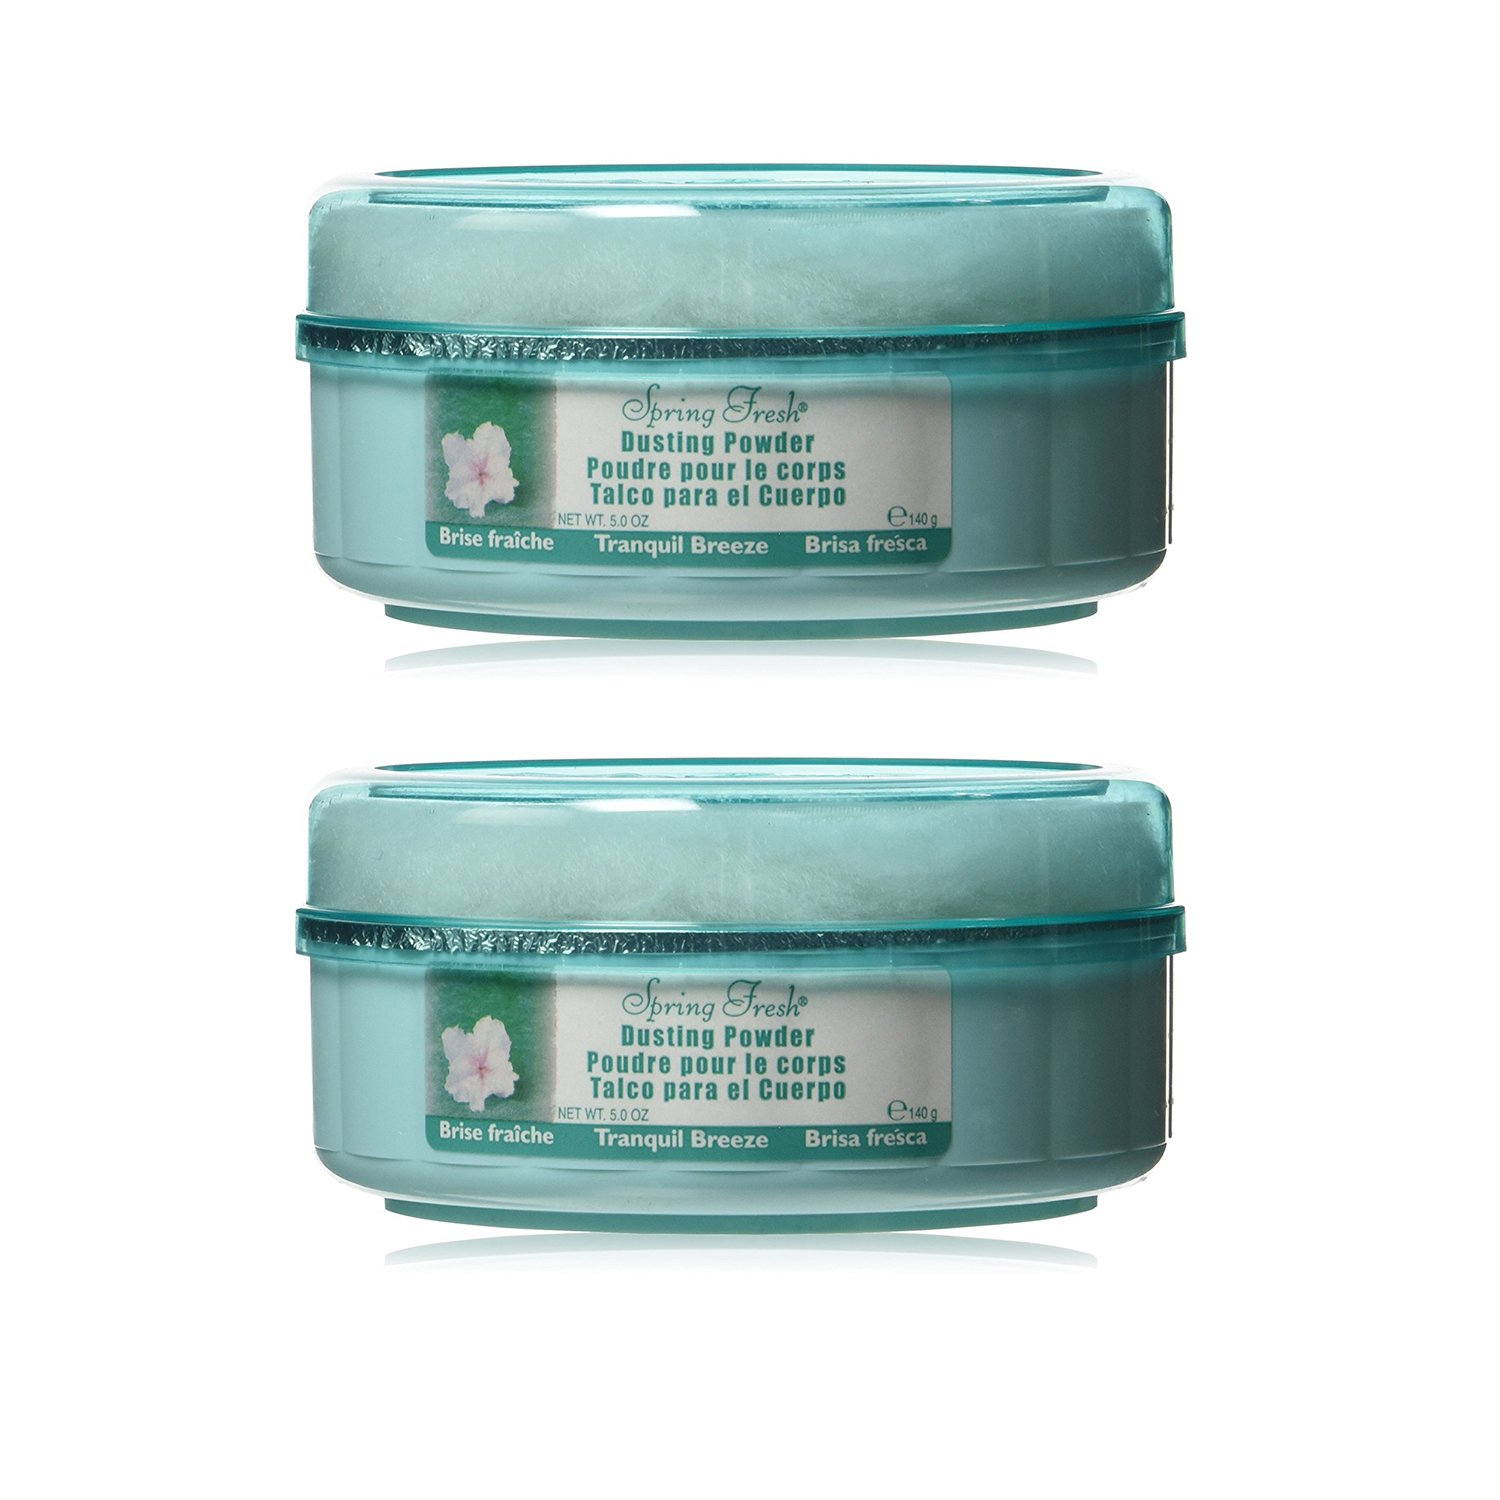 Belcam Bath Therapy Dusting Powder, Tranquil Breeze - Pack of 2